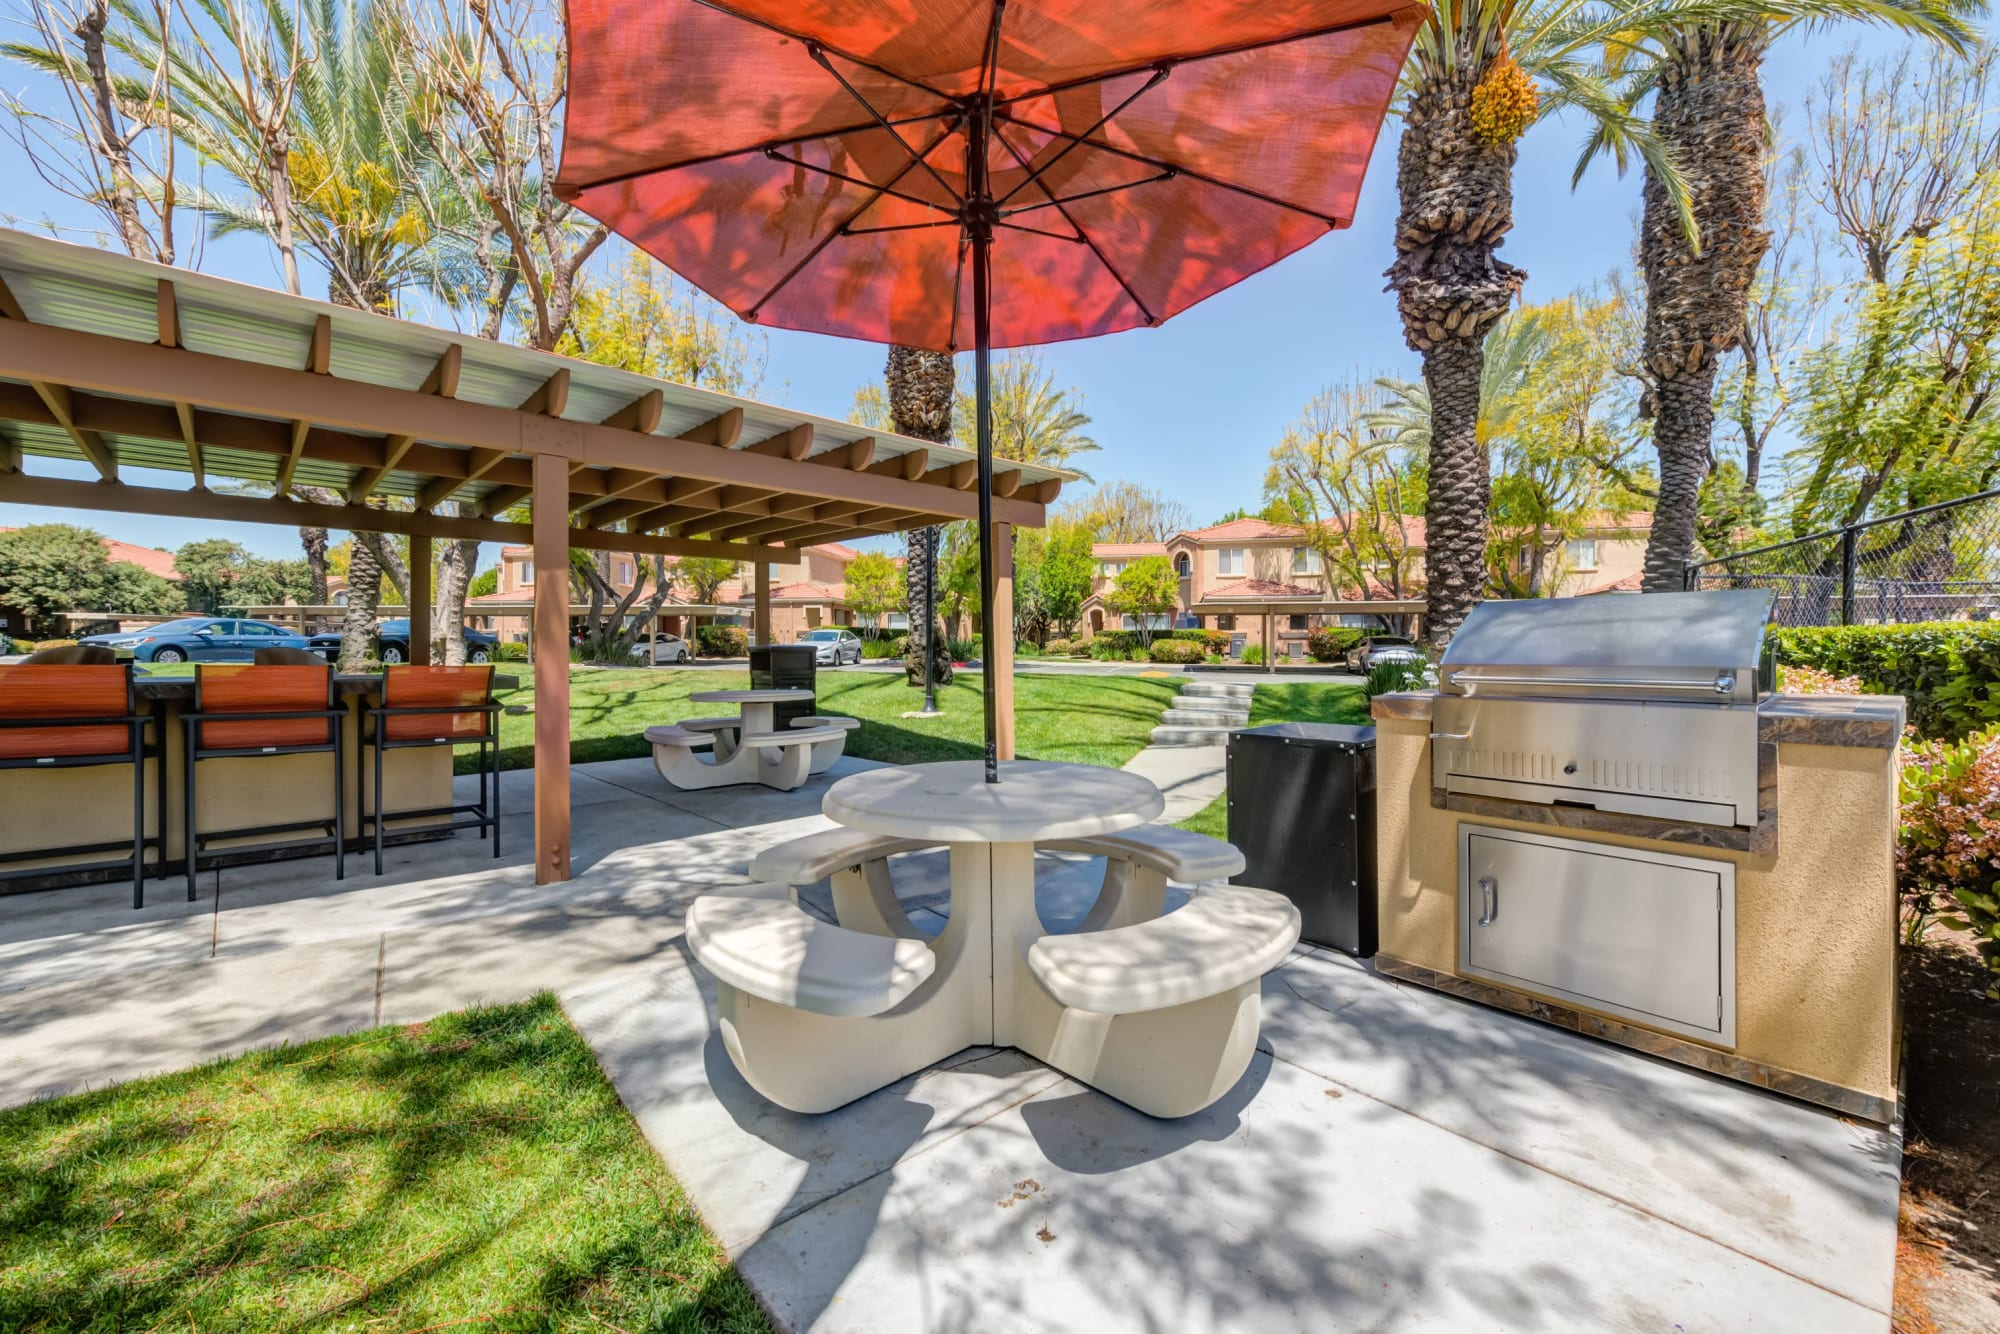 Outdoor Bbq/picnic area At Tuscany Village Apartments